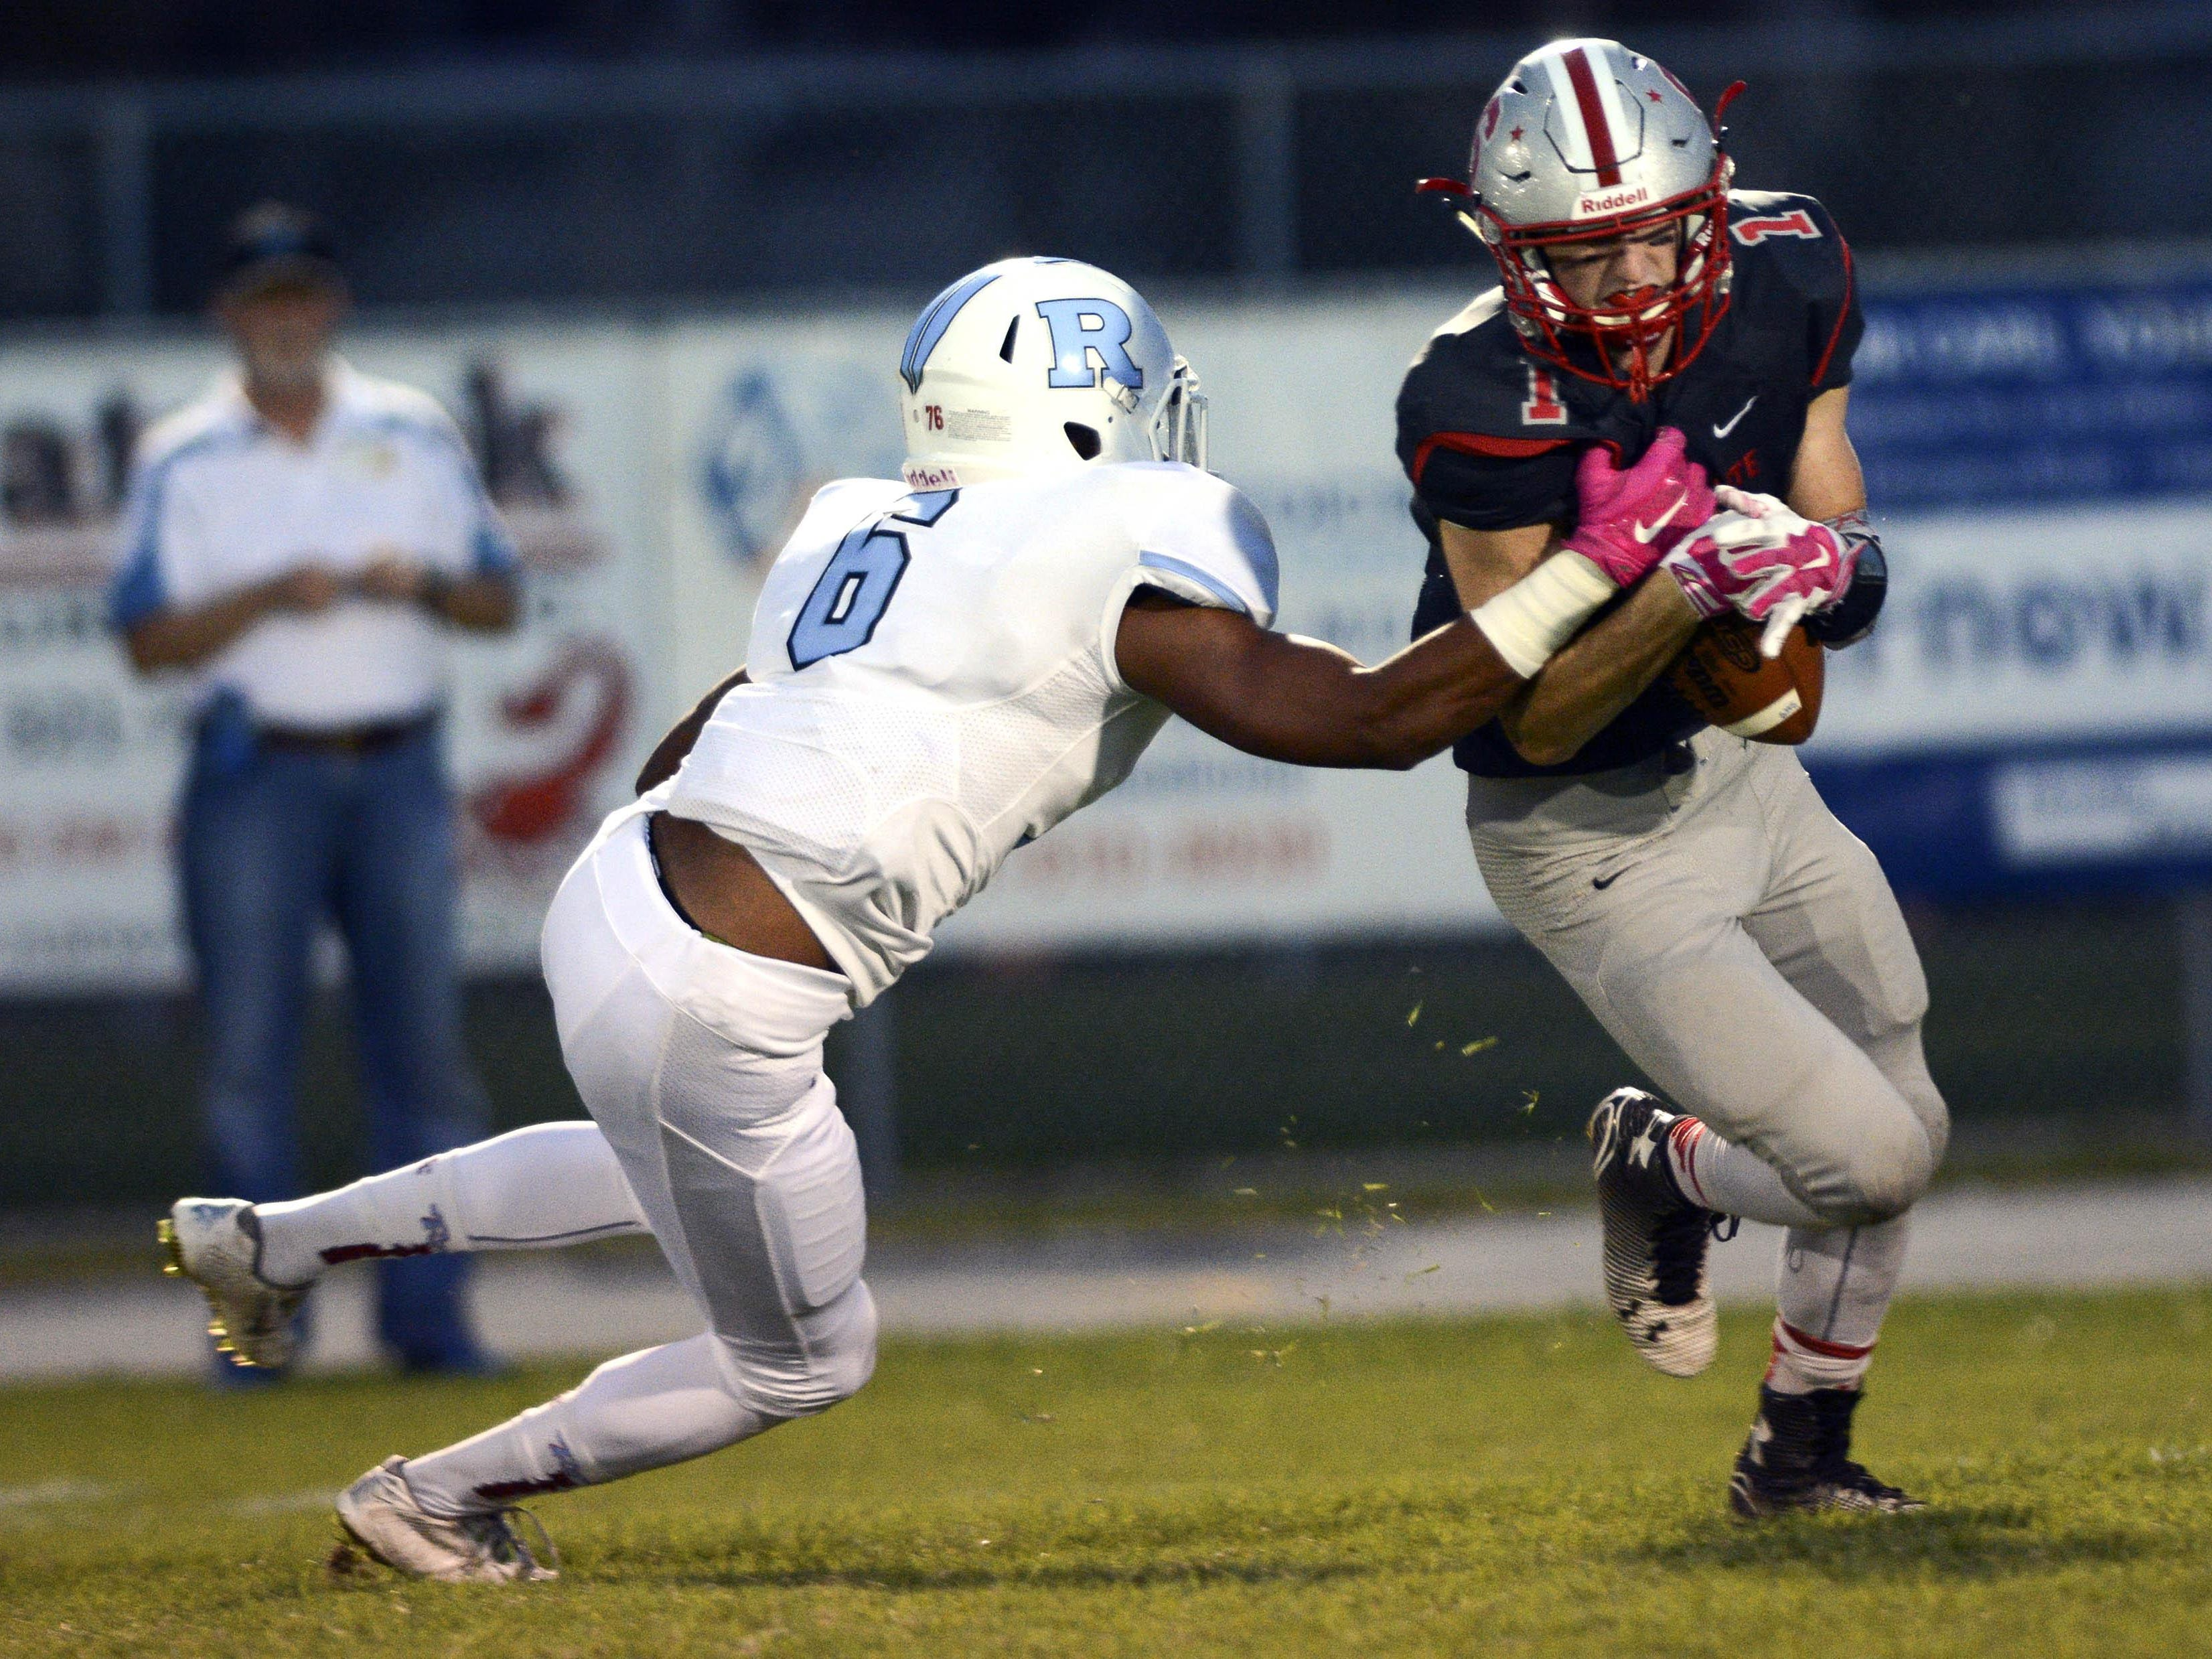 Alex Nicks of Satellite tries to hang onto the ball as Rockledge's Justin Gonzalez (6) tries to dislodge it during Friday's game in Satellite Beach.